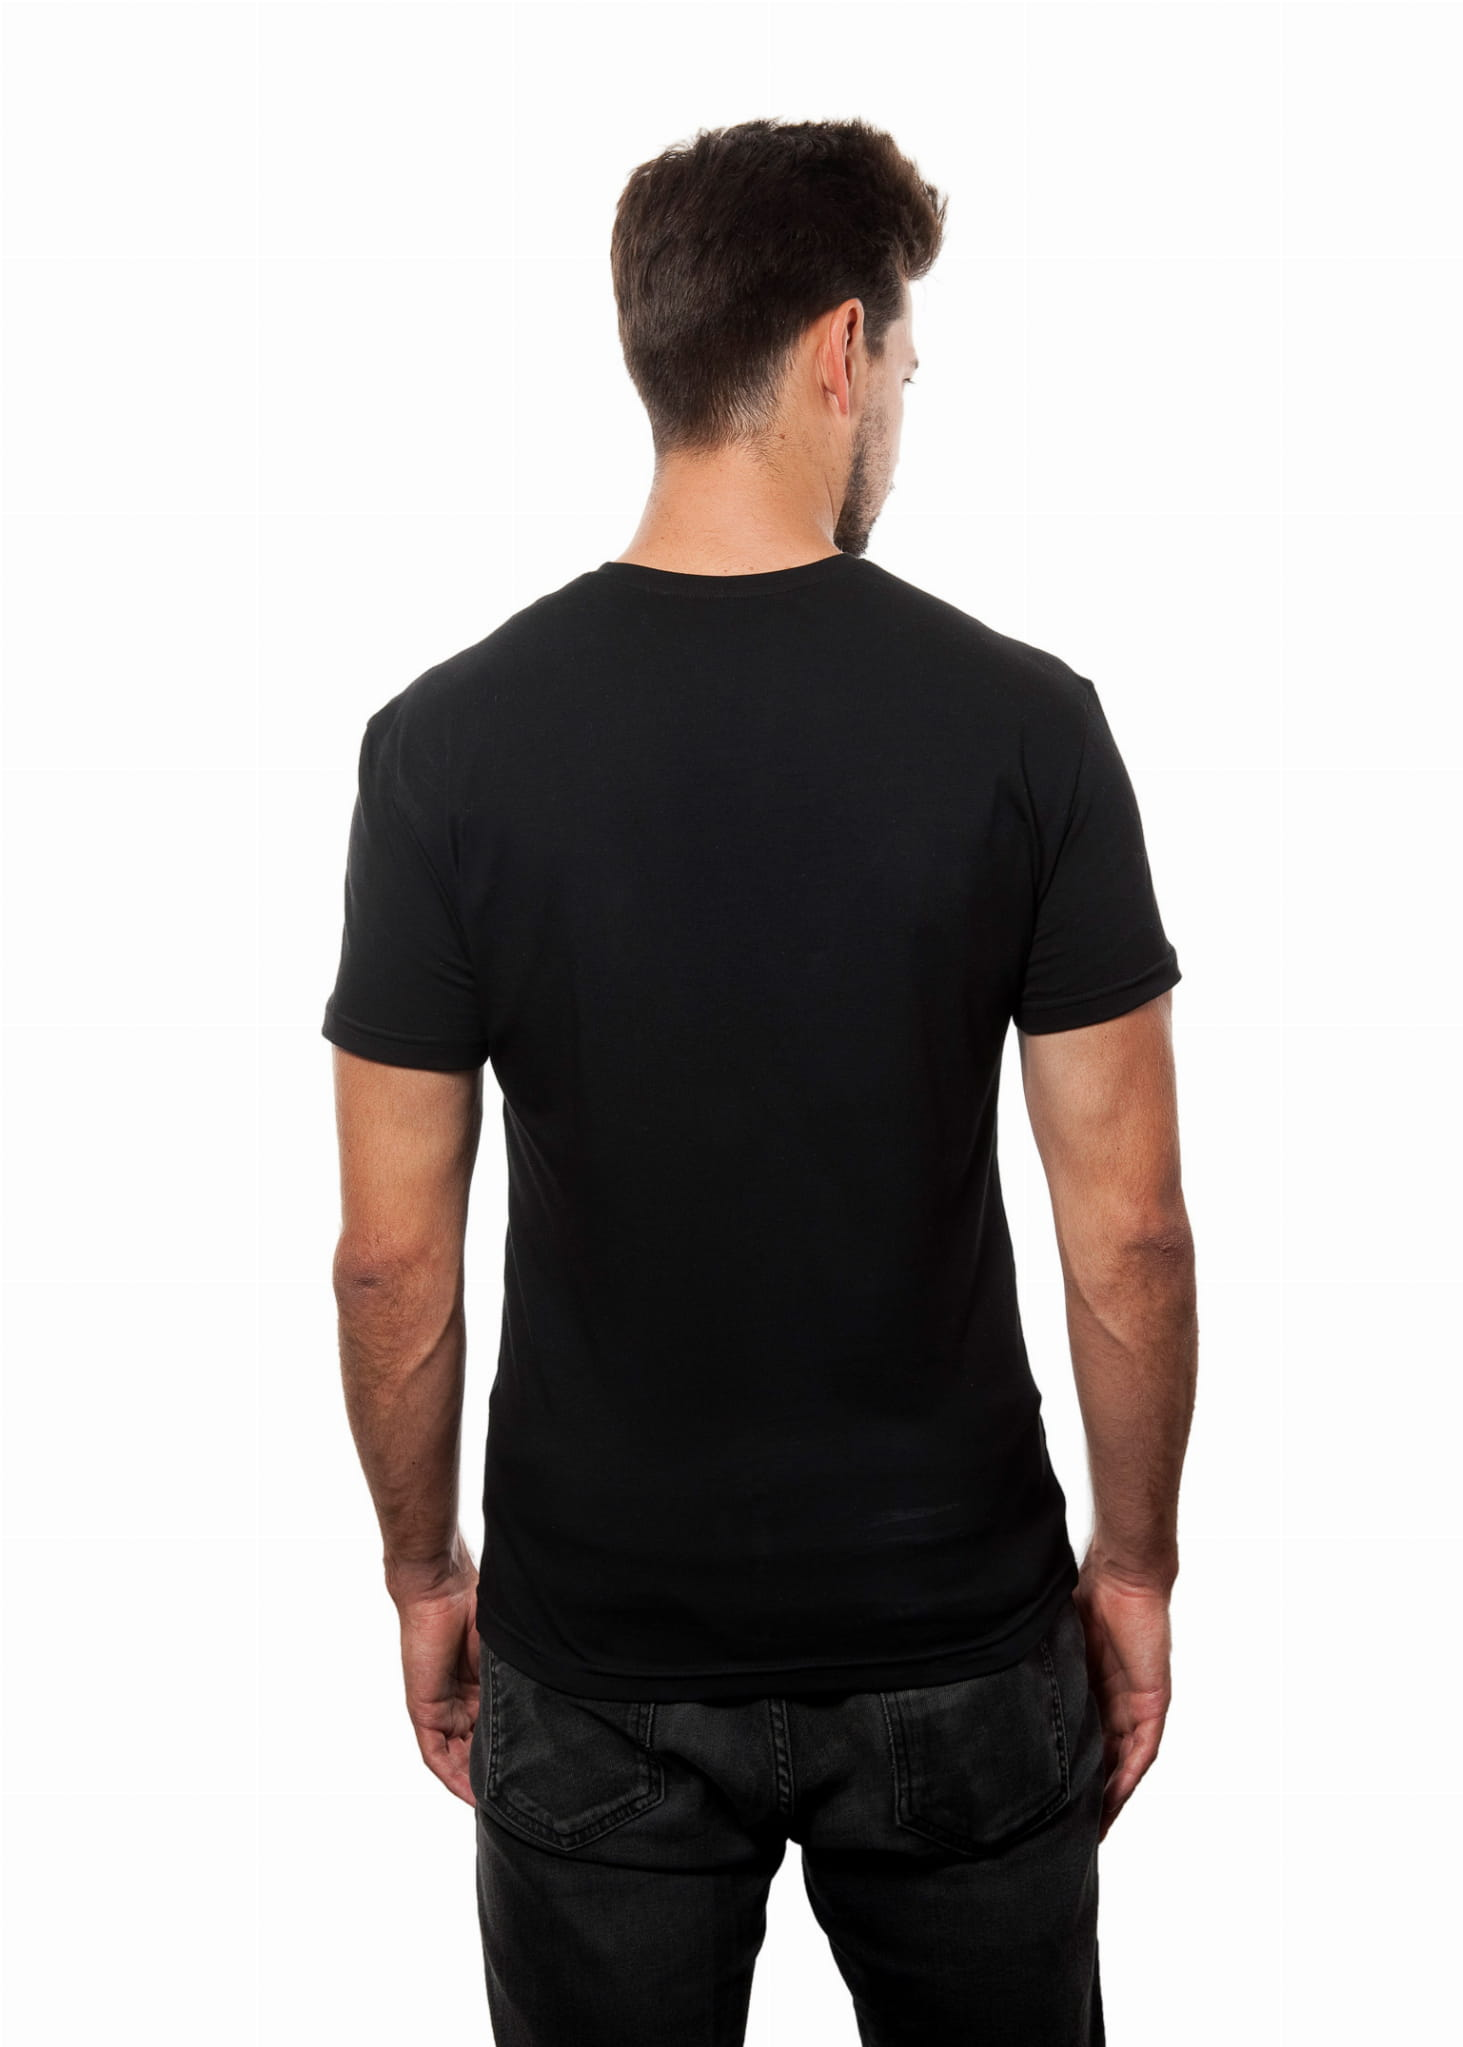 T-shirt Mr Basic Black